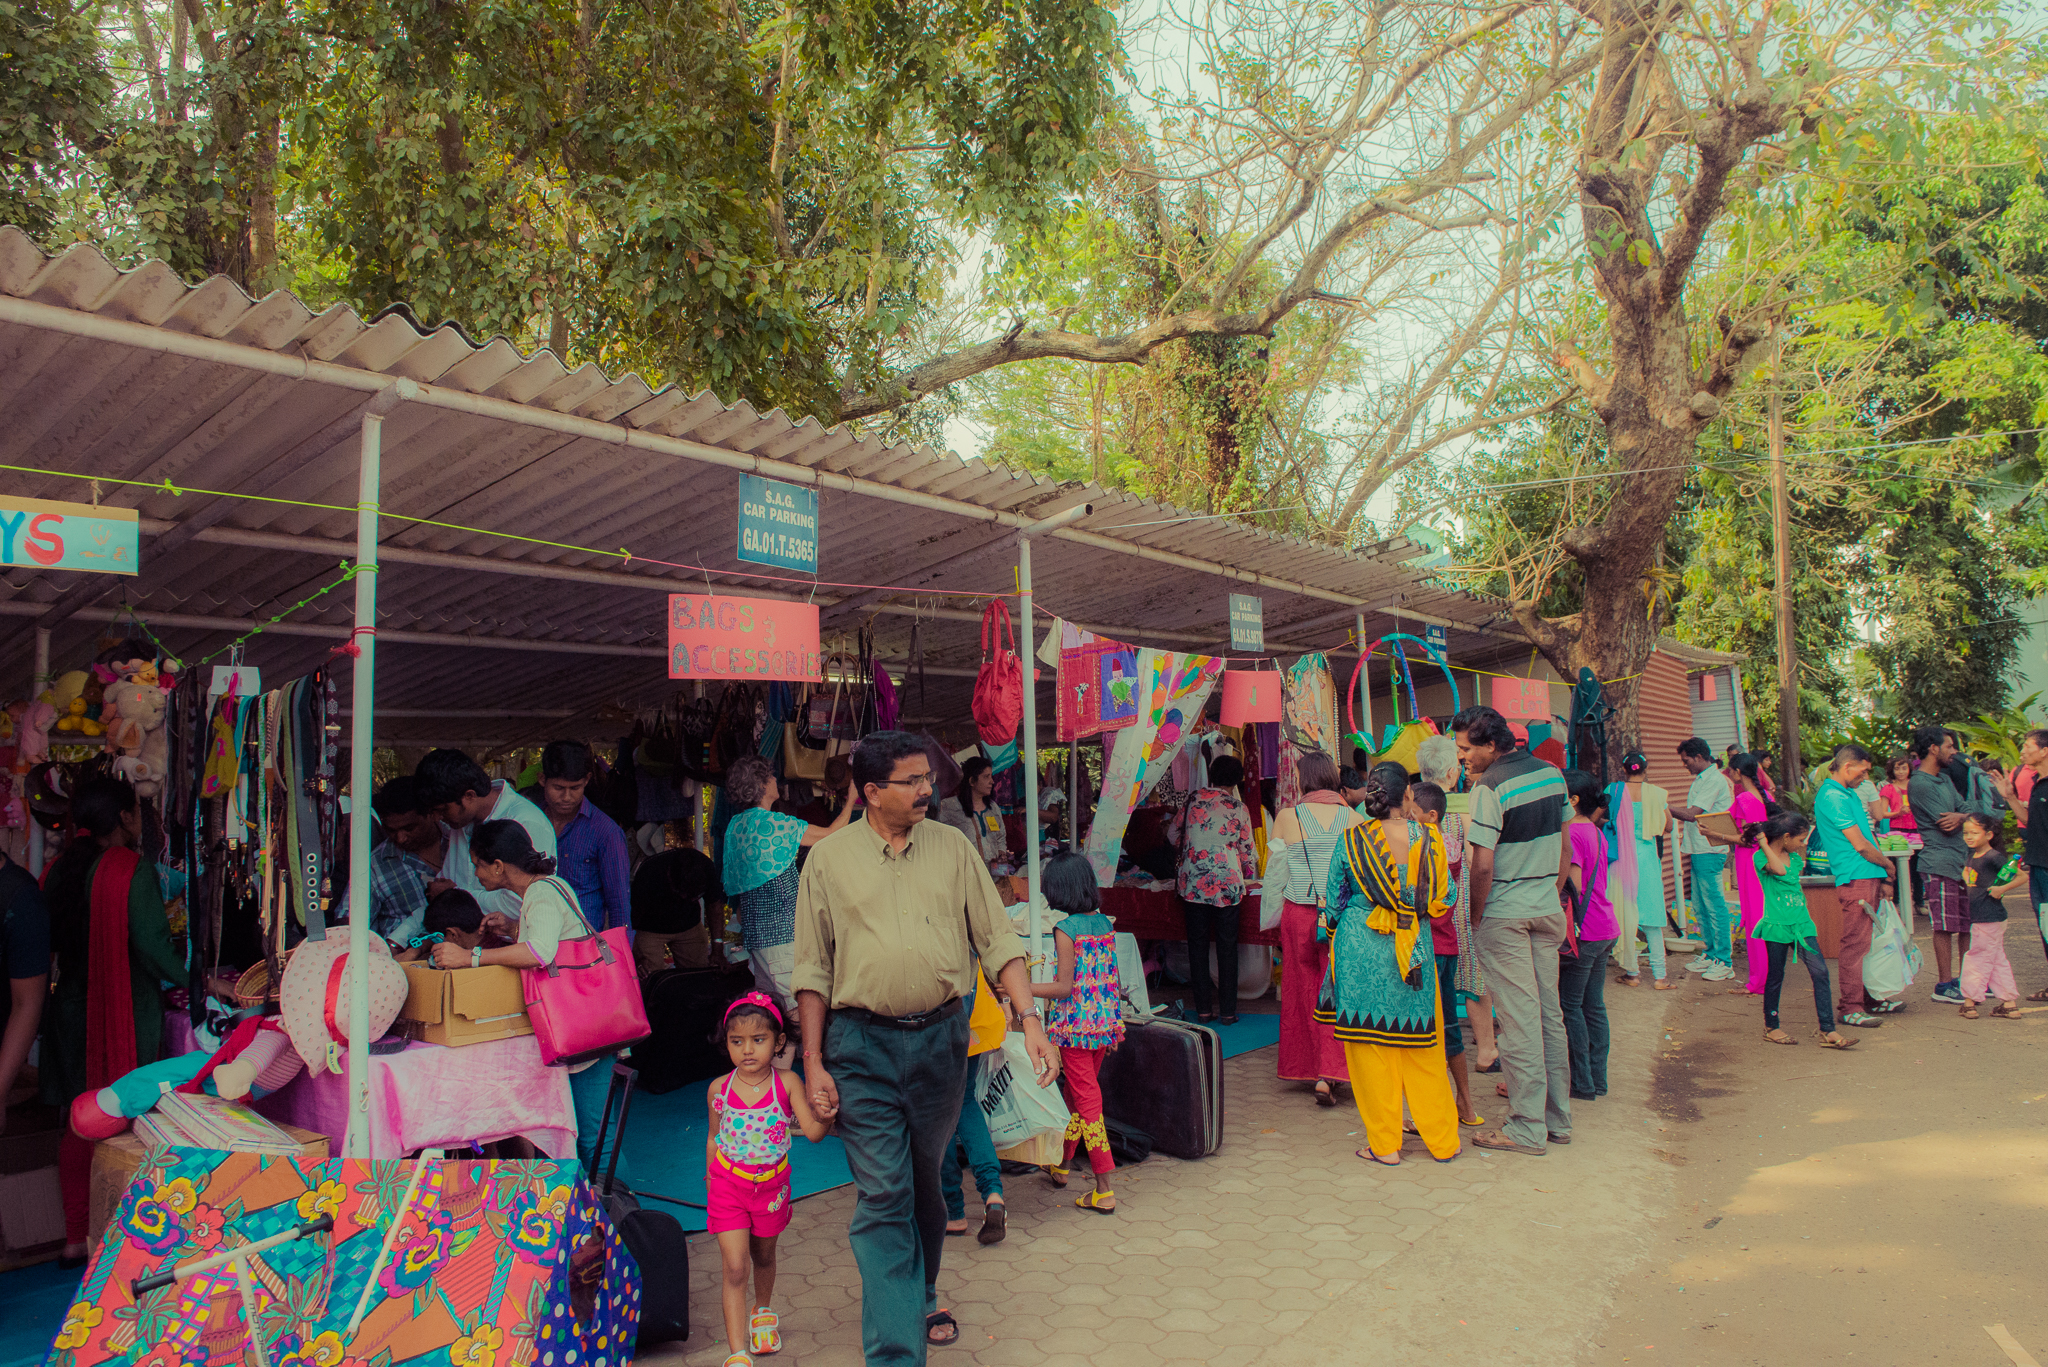 Nijugrapher-Bookworm_Jumble_Sale_2015-9-Nijugrapher-Bookworm-Panjim_Jumble_2015 - 42 - DSC_5495